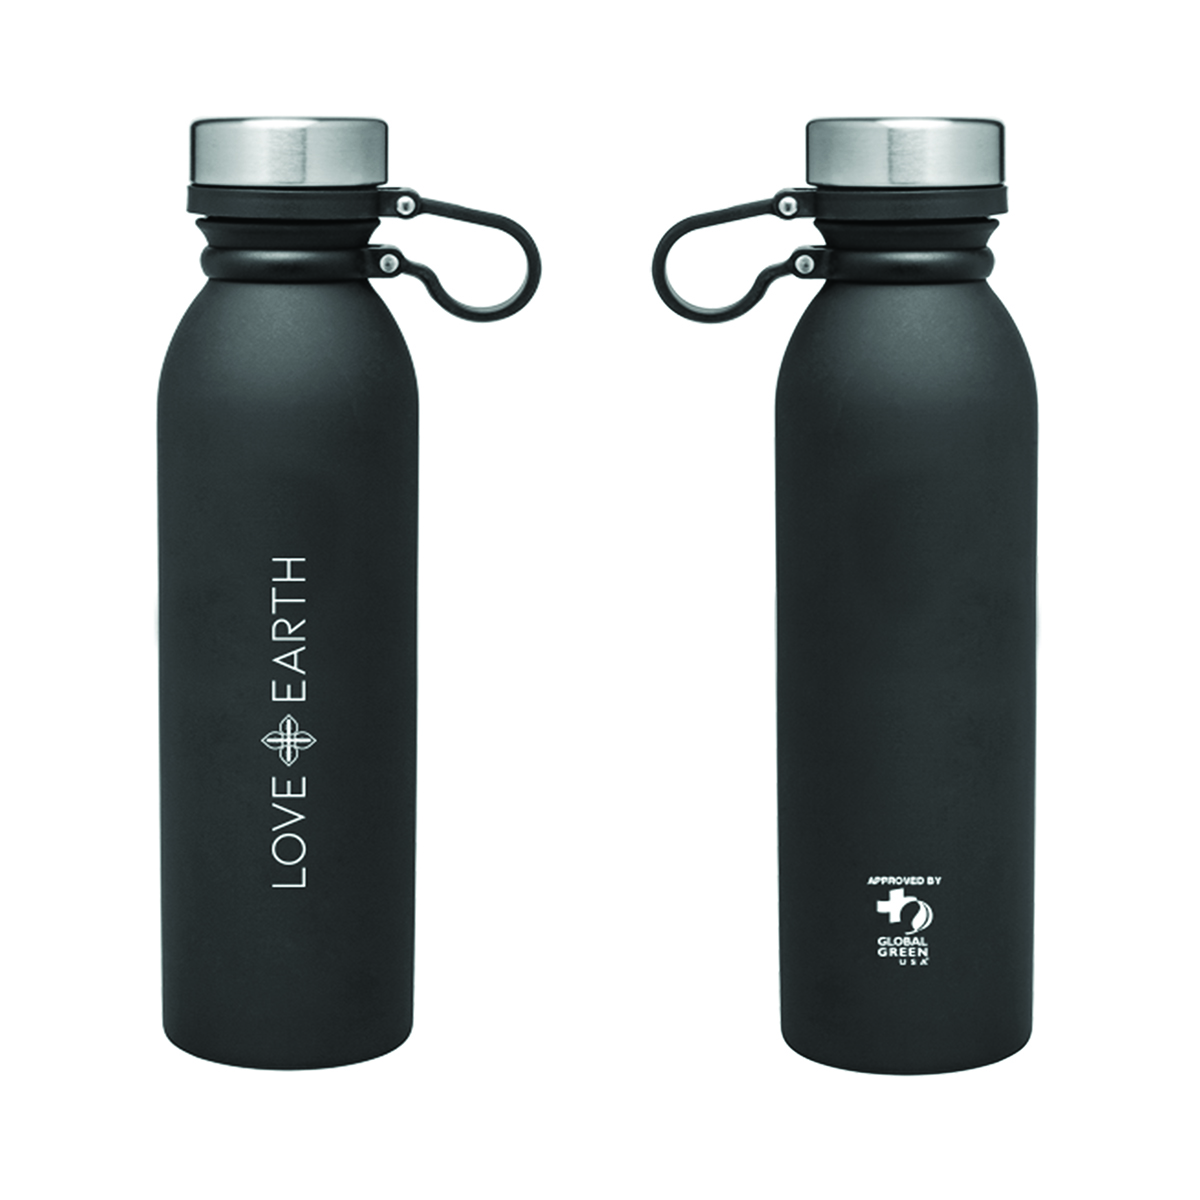 LOVE+EARTH 25oz. SLICK STAINLESS WATER BOTTLE